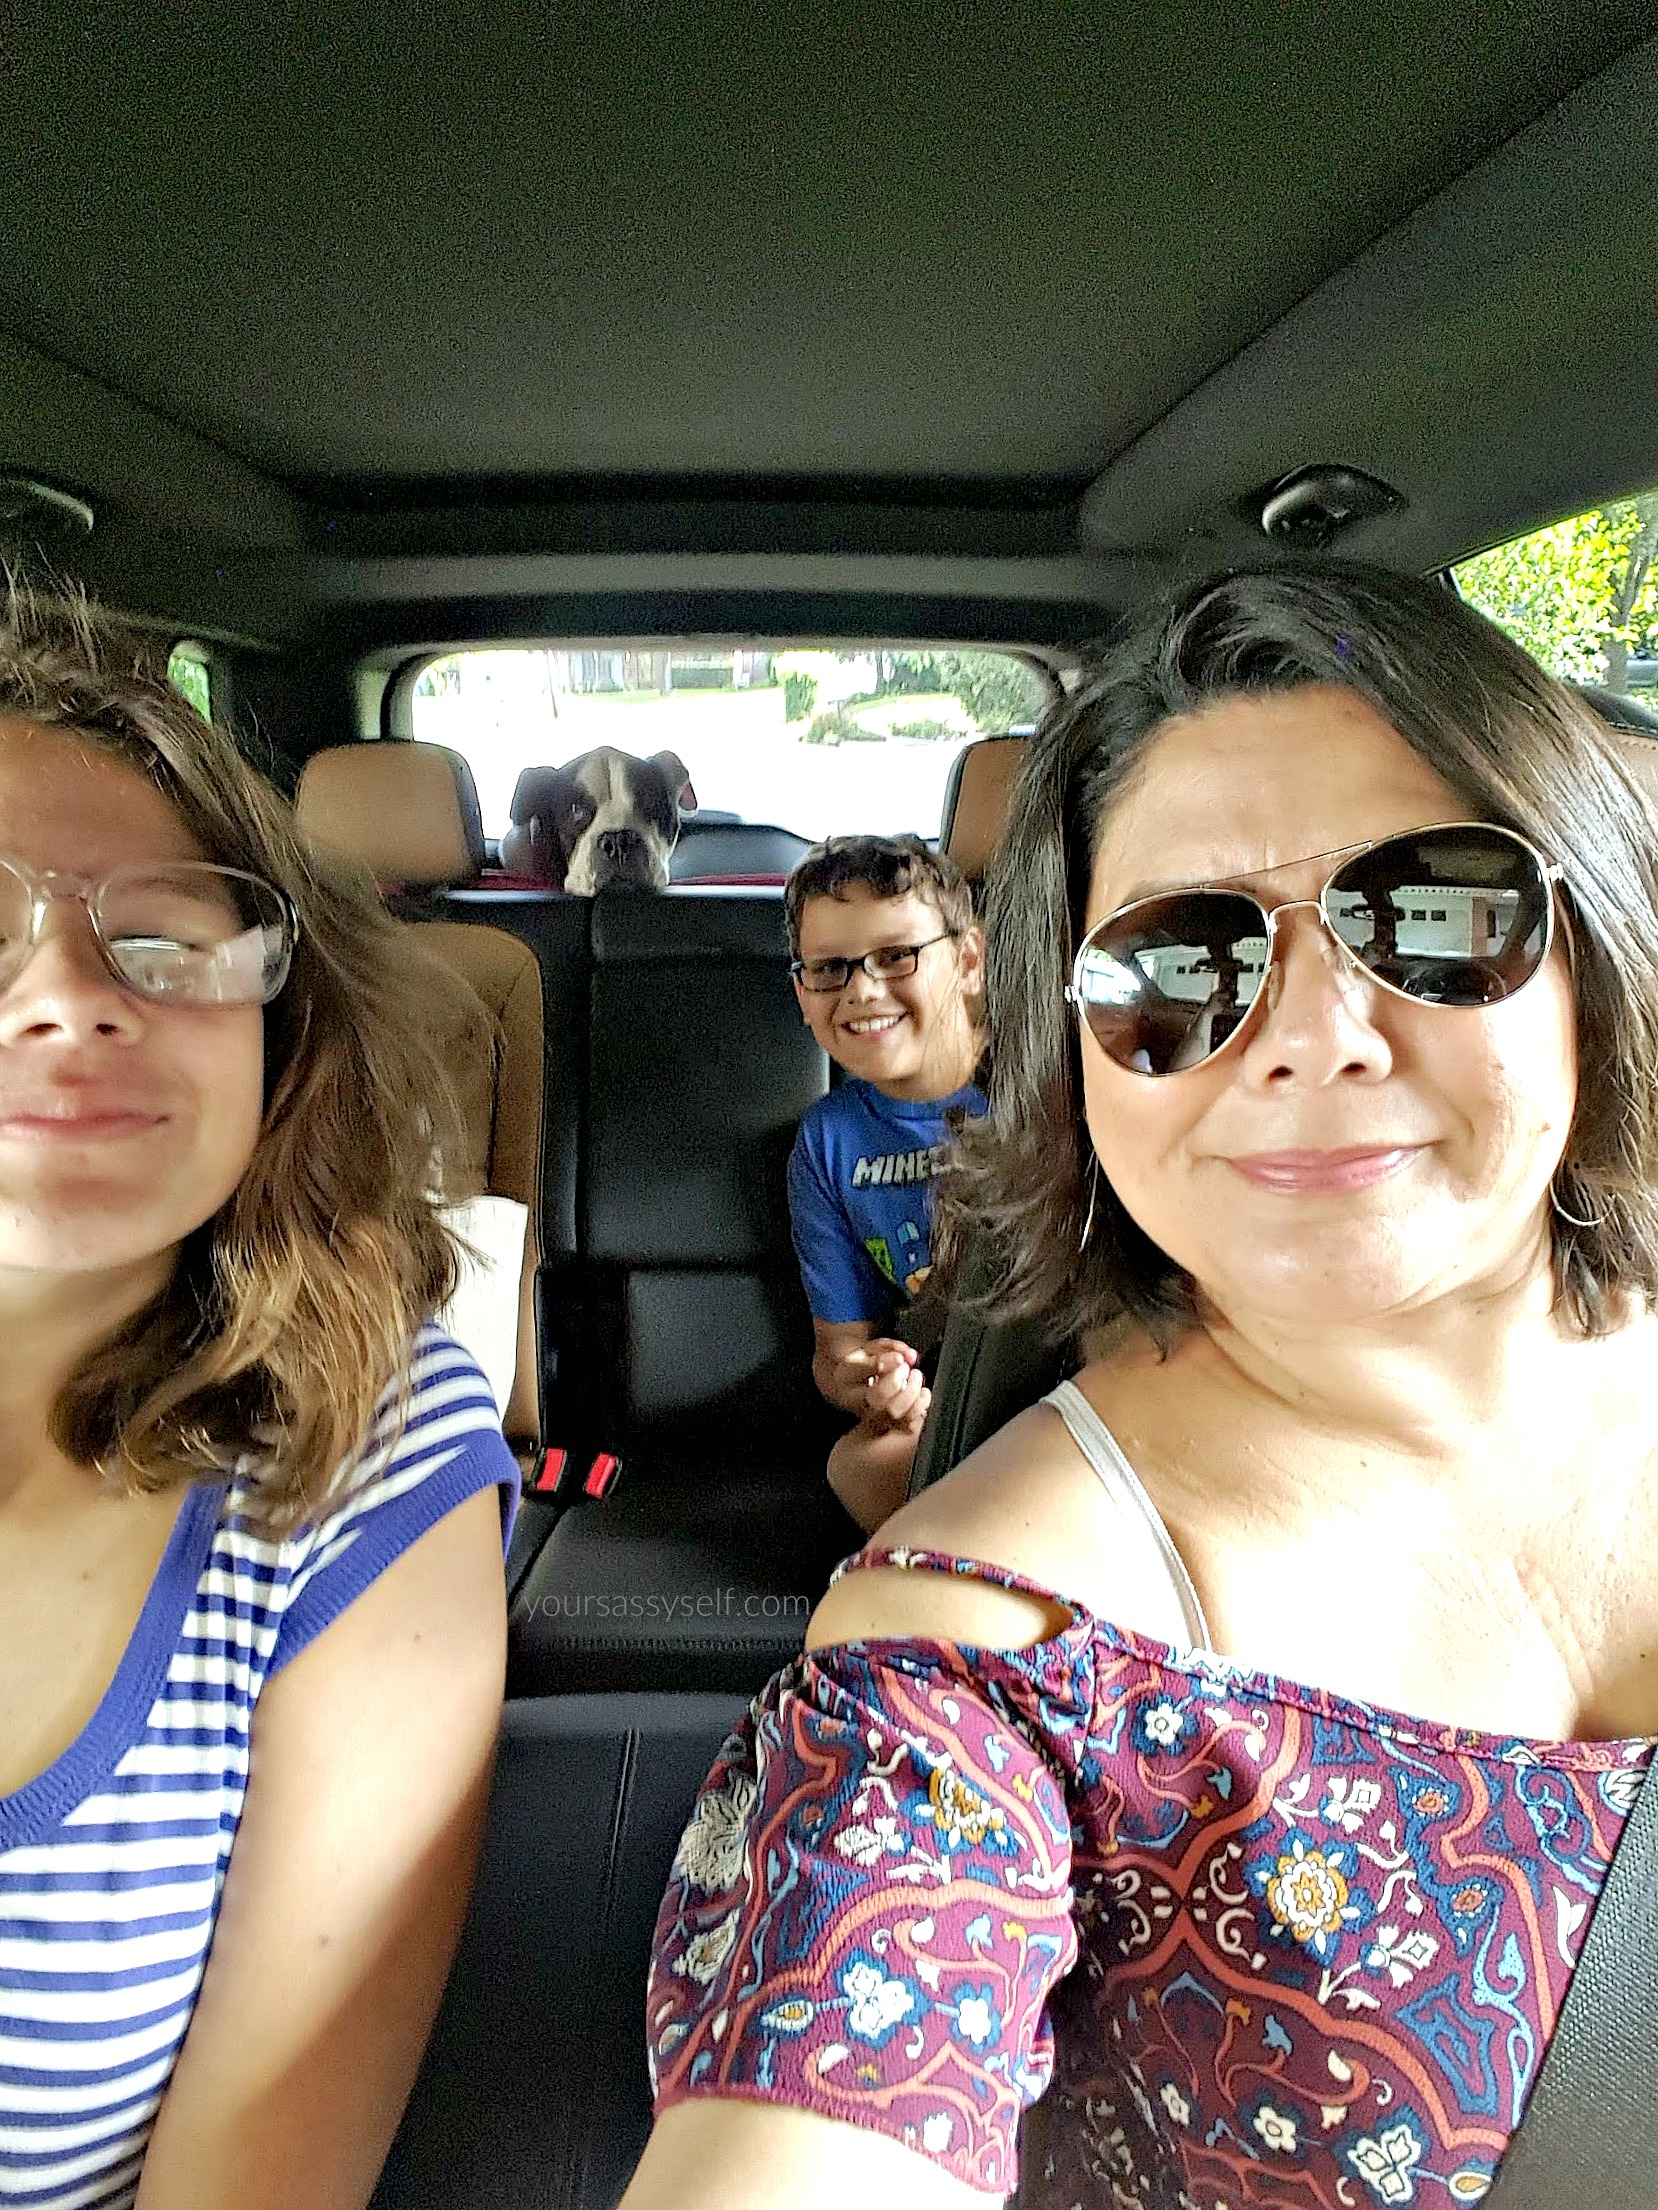 Family Road trip in 2018 Chevy Equinox - yoursassyself.com